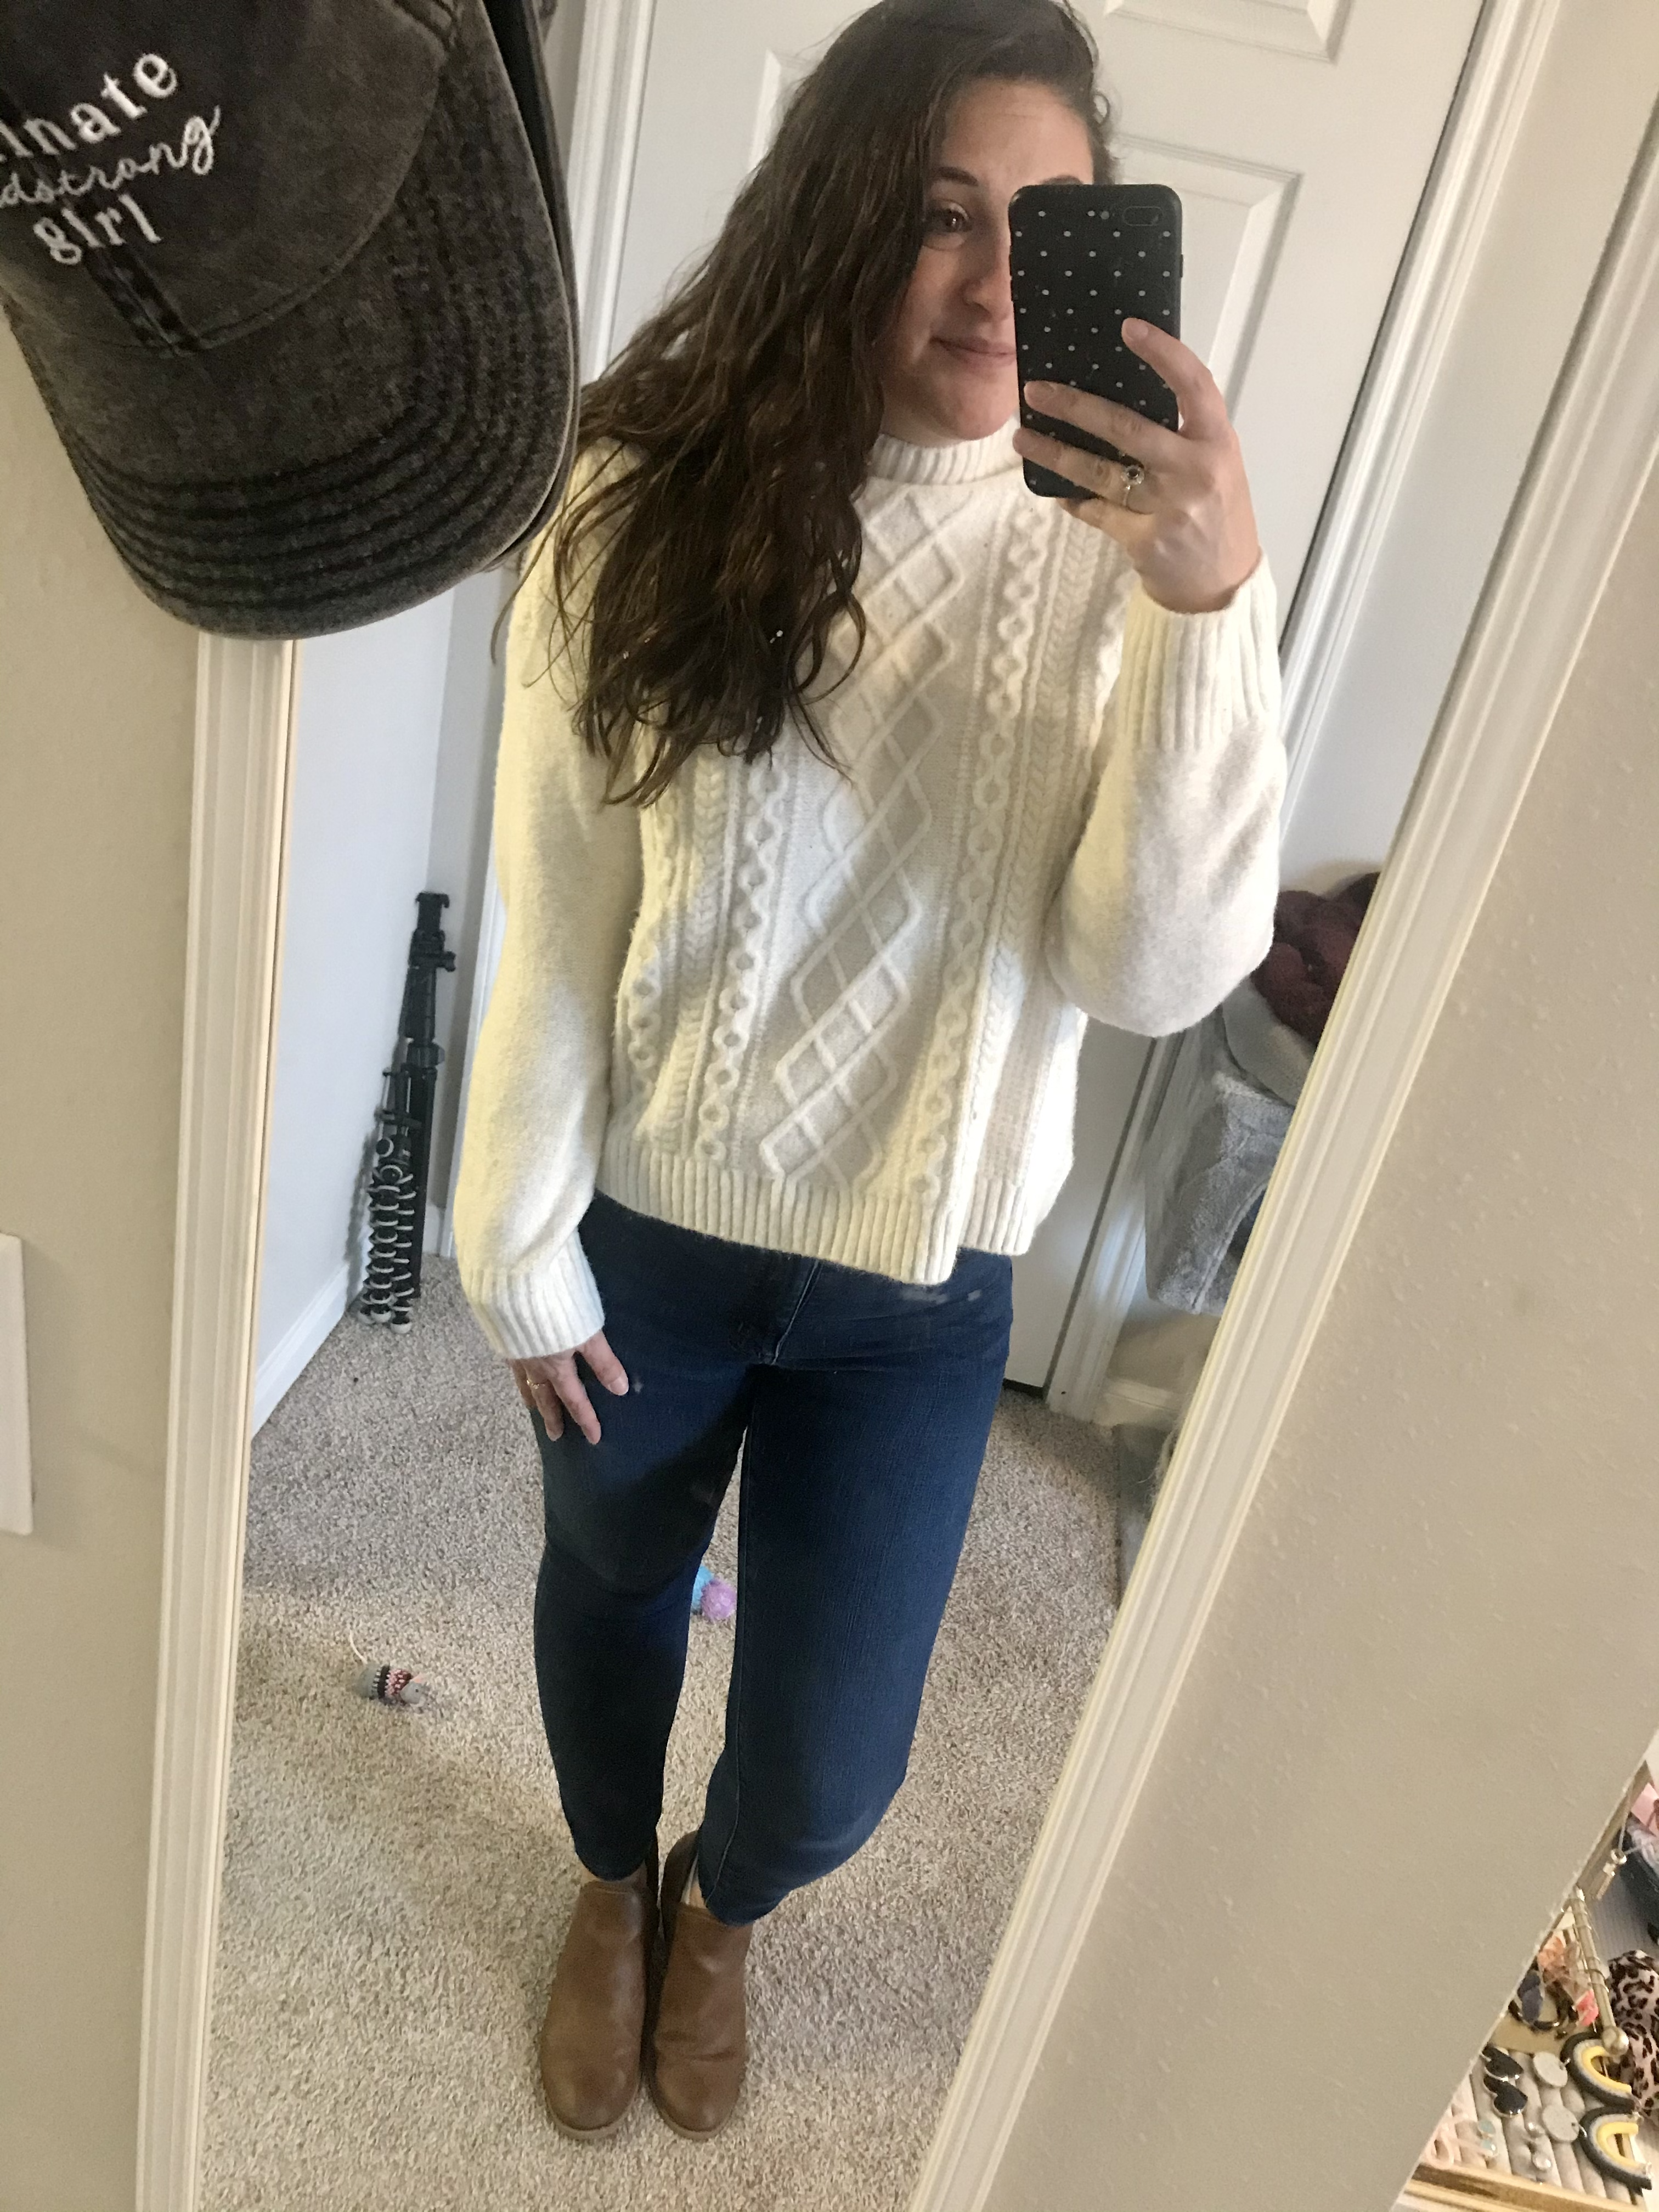 Girl in white turtleneck sweater with blue jeans and brown boots